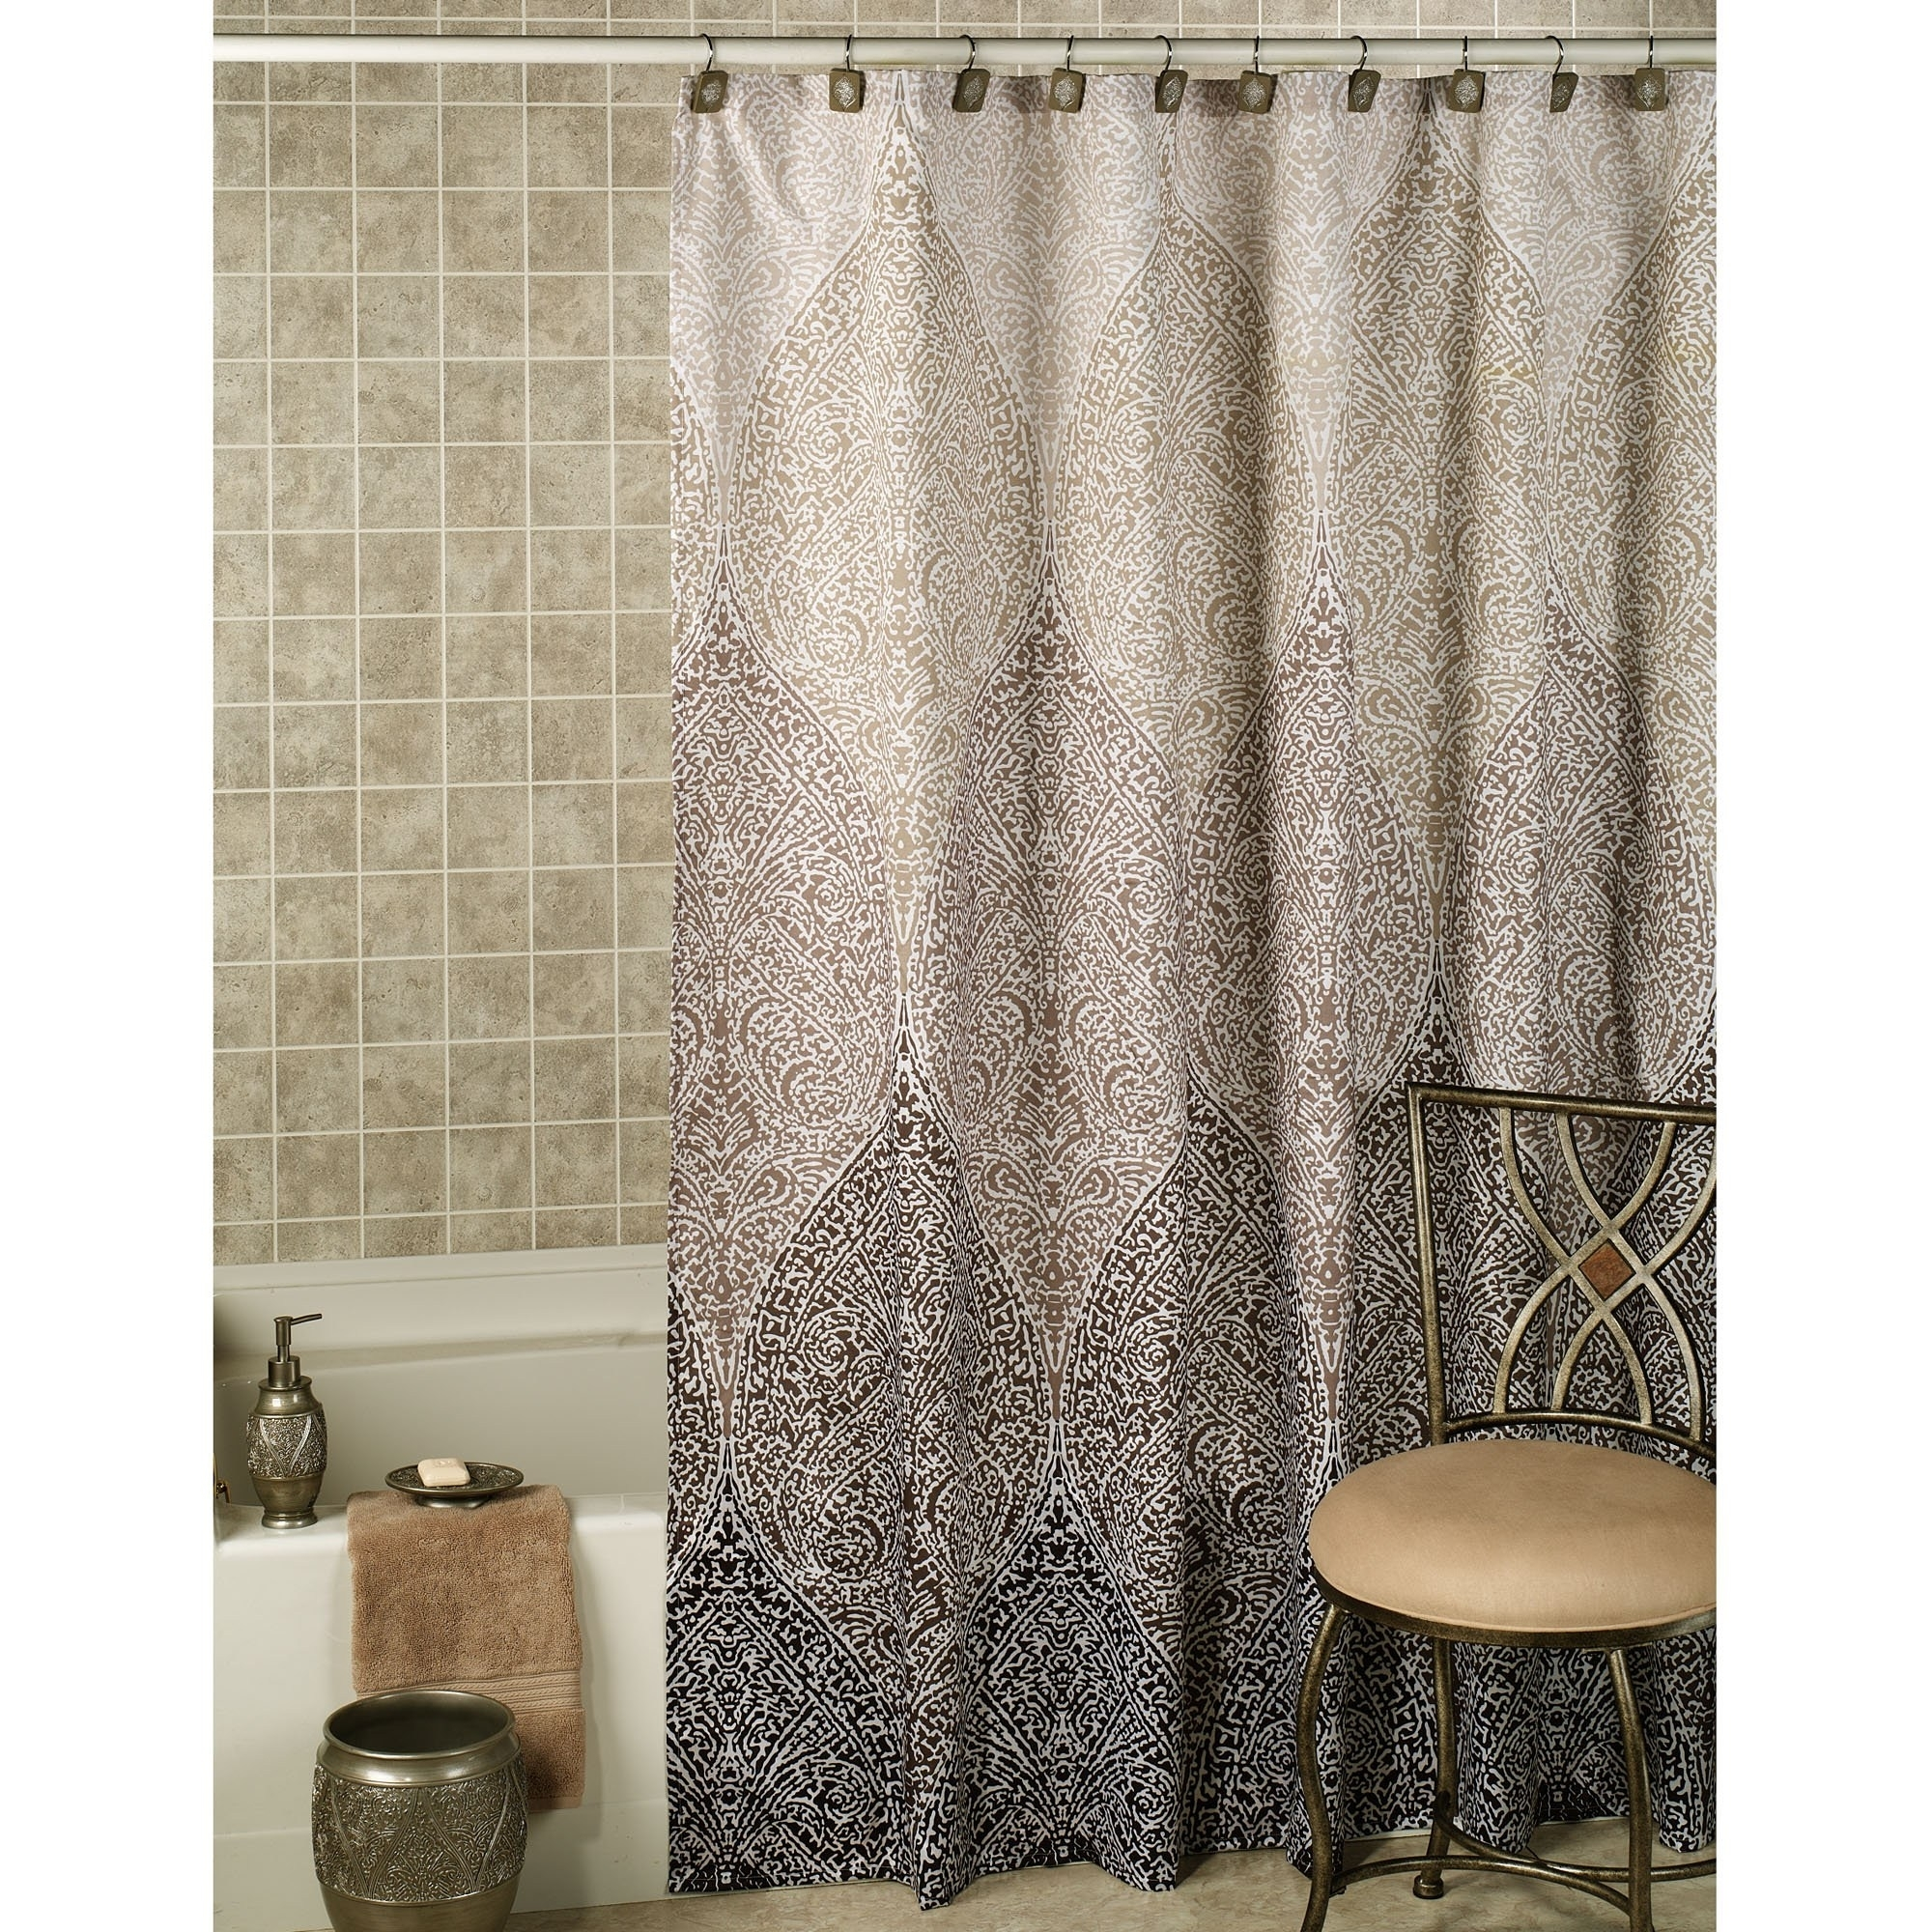 Curtain Aurora Home Velvet Moroccan Print Grommet Top 84 Inch Within Moroccan Print Curtains (Image 6 of 15)